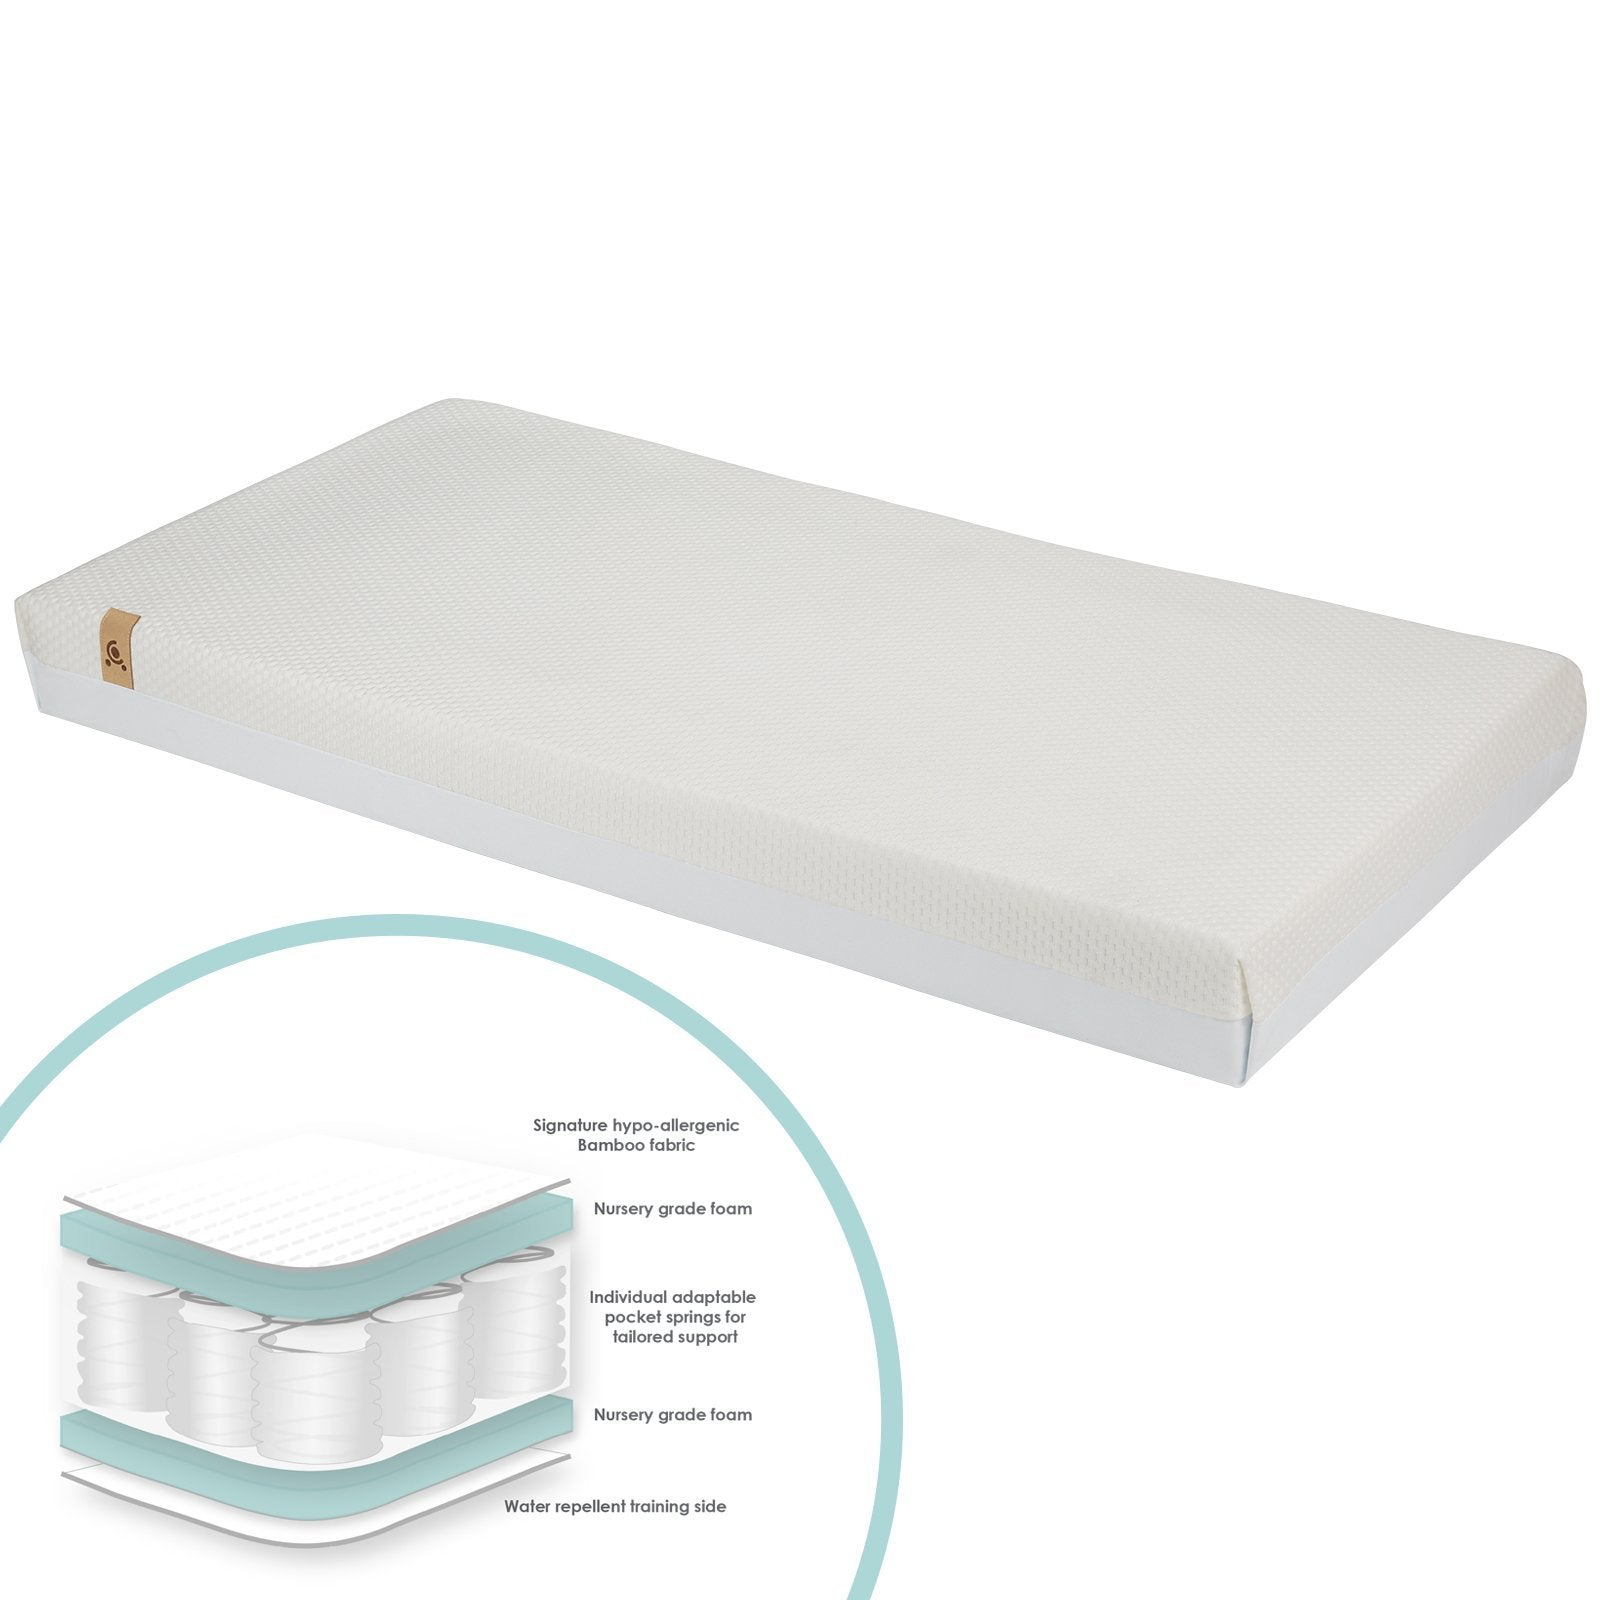 Signature Hypo-Allergenic Bamboo Pocket Sprung Cot Mattress CuddleCo